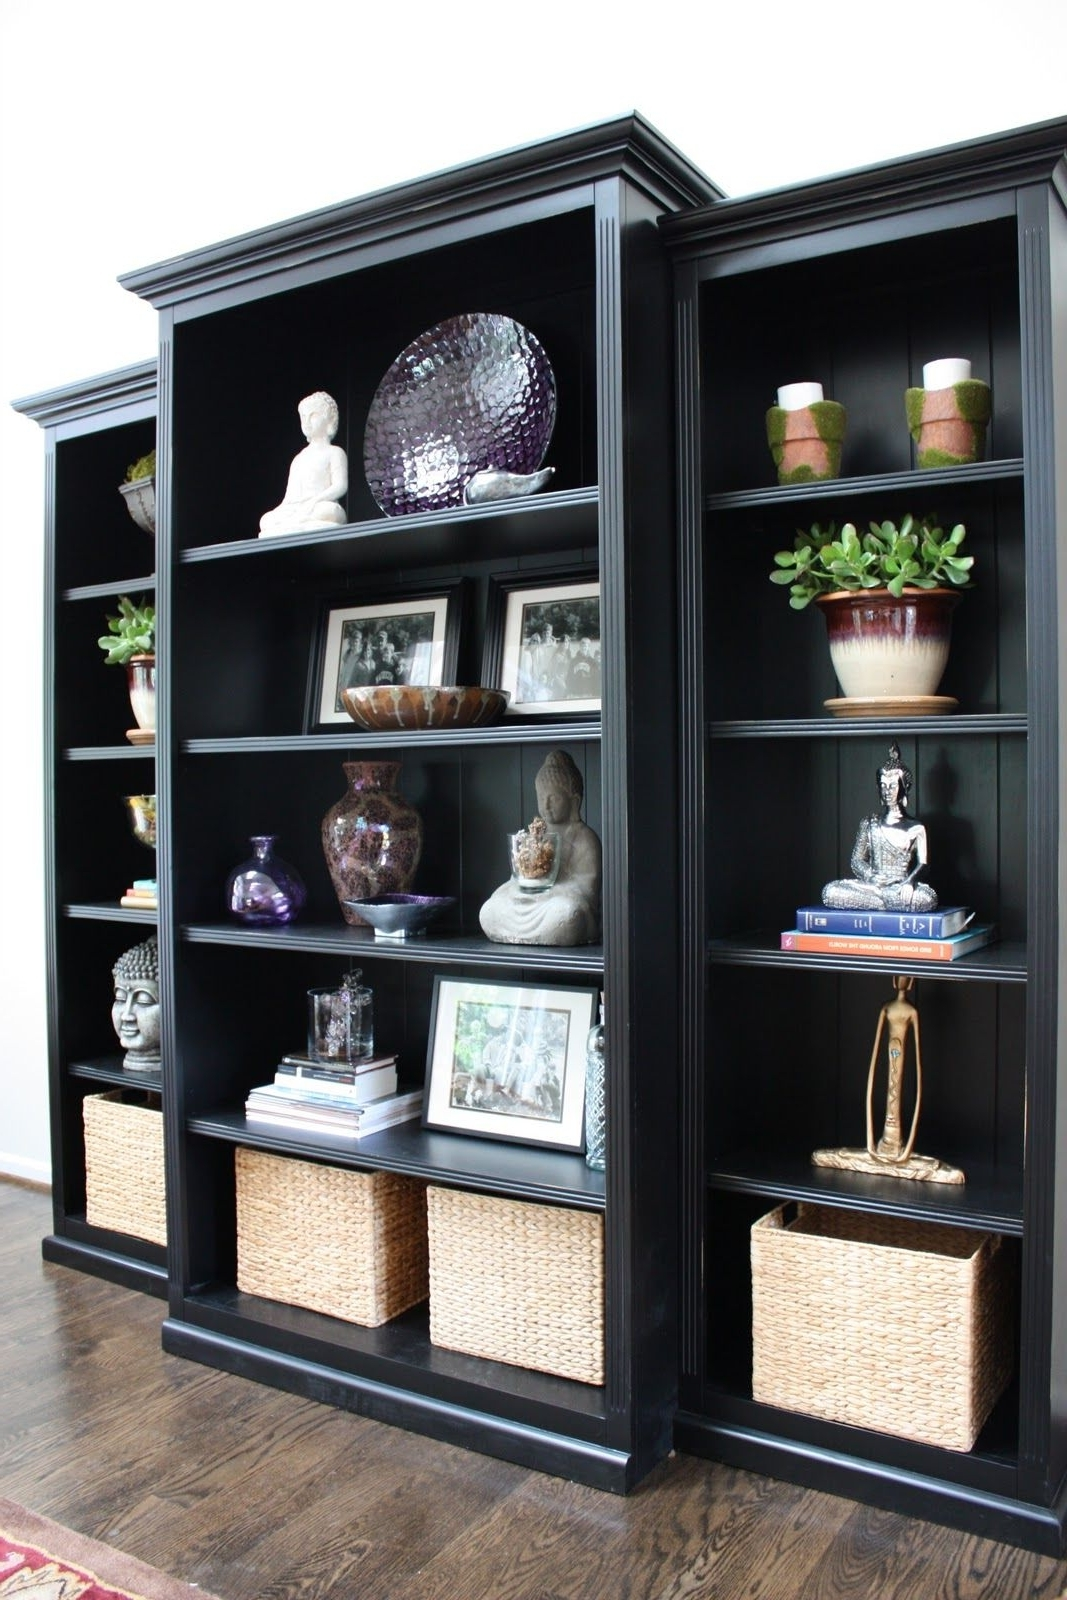 Fashionable Black Bookcases Inside Trim Three Inexpensive Bookcases With Mouldings And Paint Them (View 9 of 15)